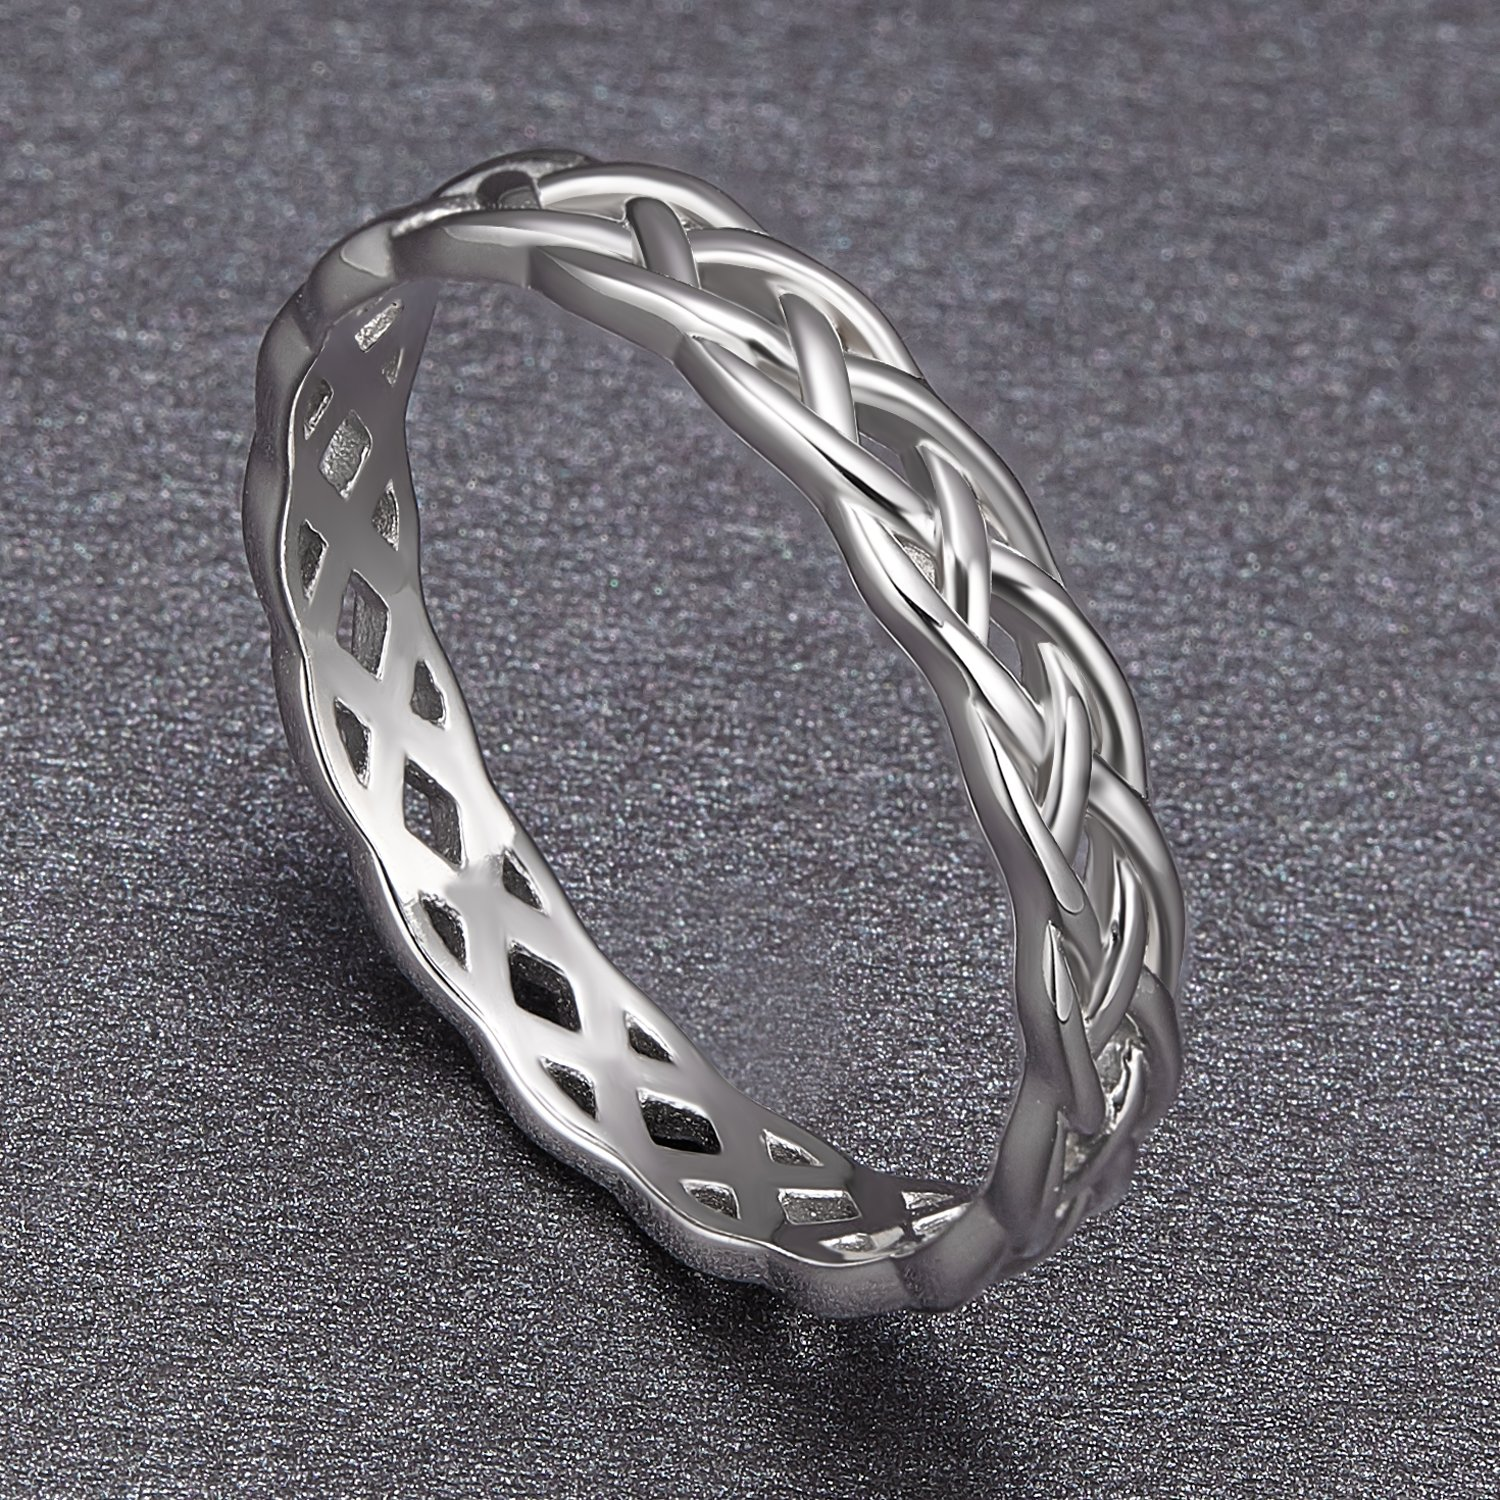 SOMEN TUNGSTEN 925 Sterling Silver Ring 4mm Eternity Knot Wedding Band for Women Size 7.5 by SOMEN TUNGSTEN (Image #2)